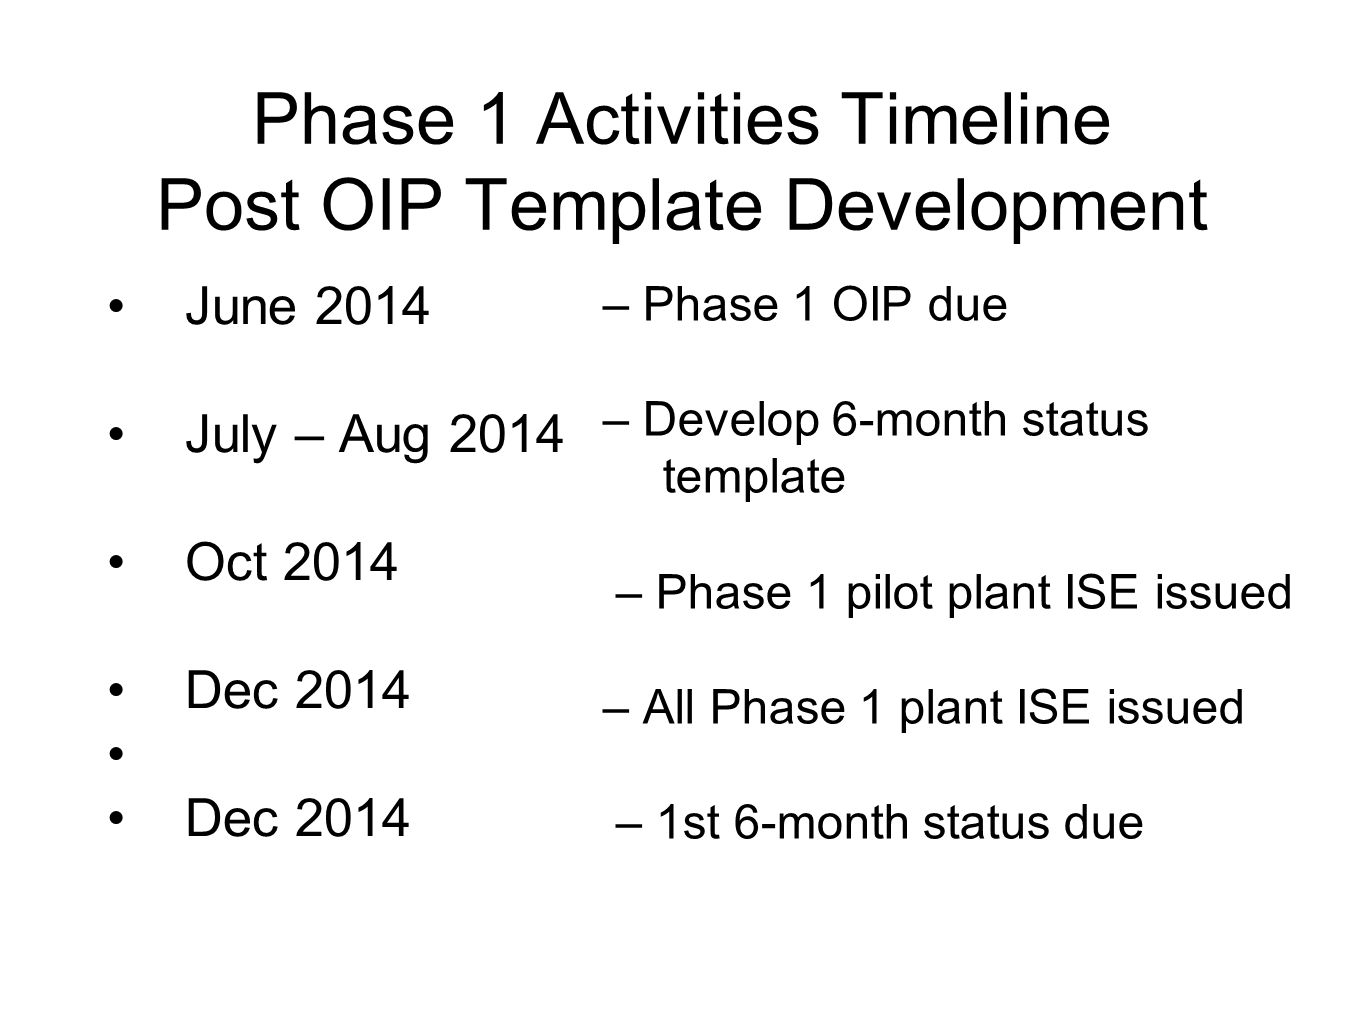 Phase 1 Activities Timeline Post OIP Template Development